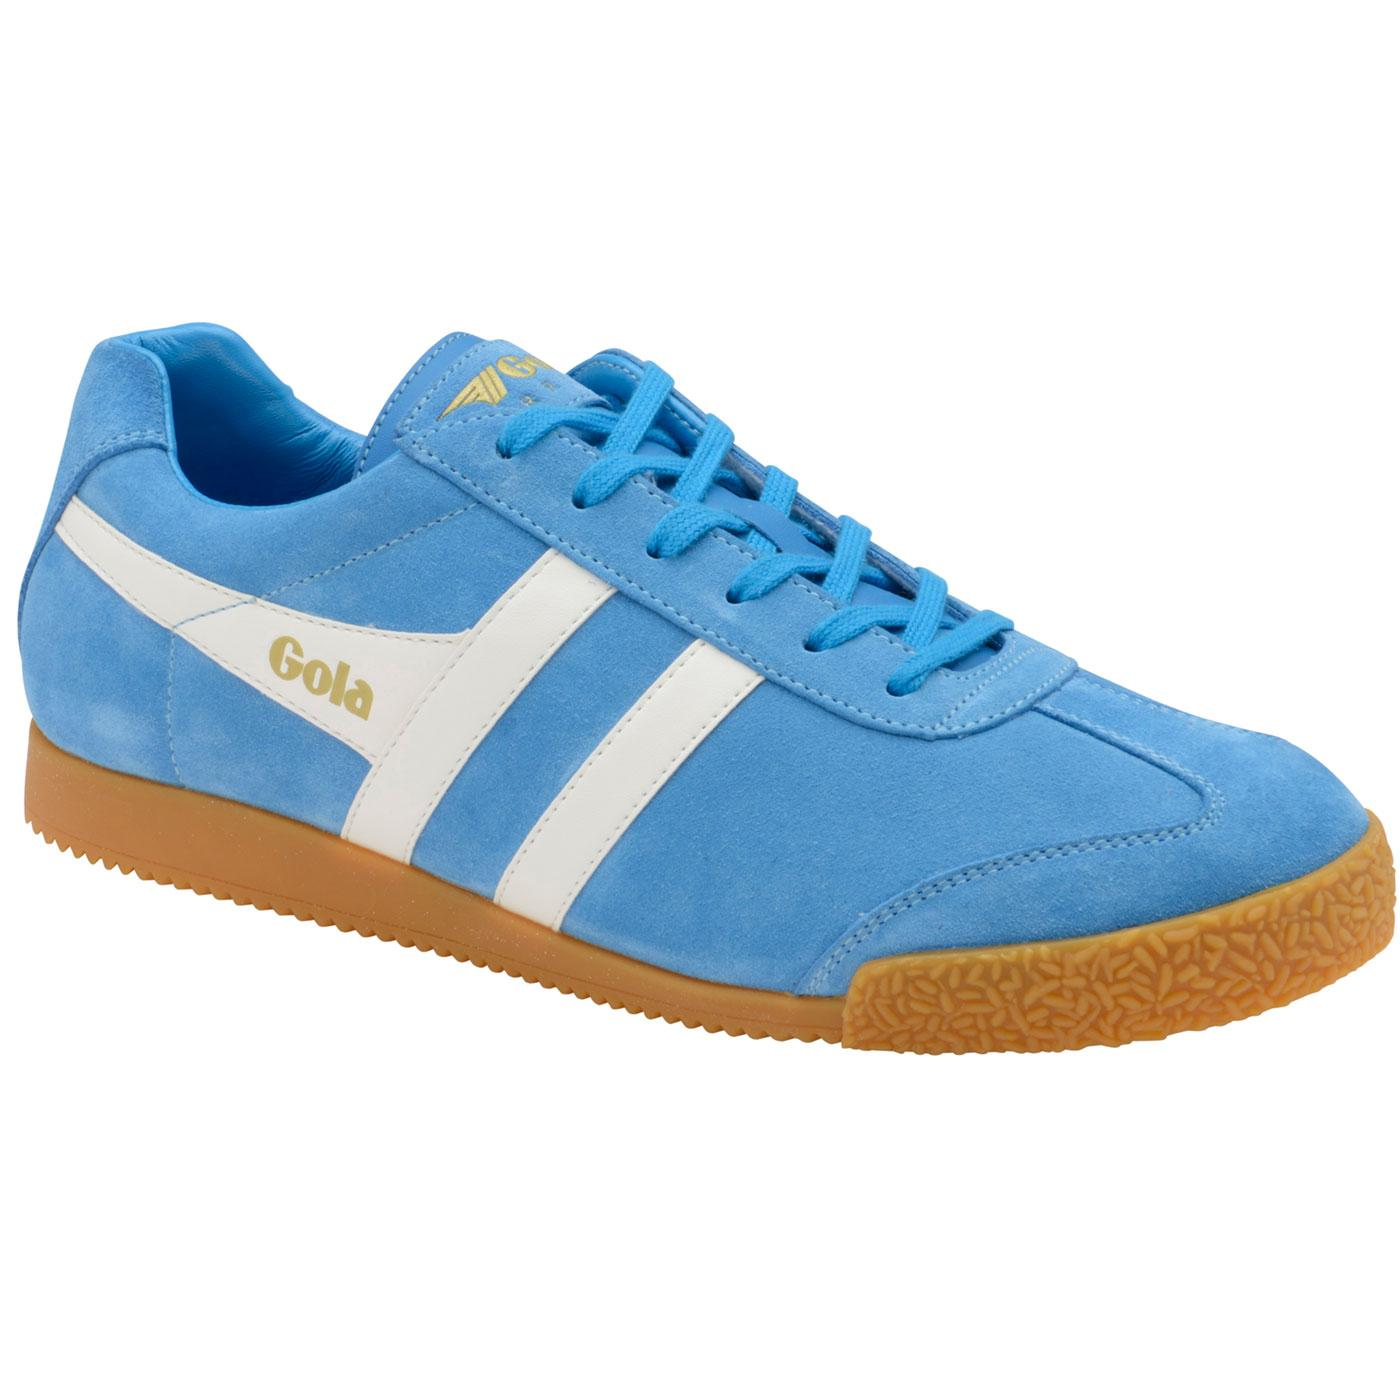 GOLA Harrier Suede Mens Retro Trainers (Santorini)